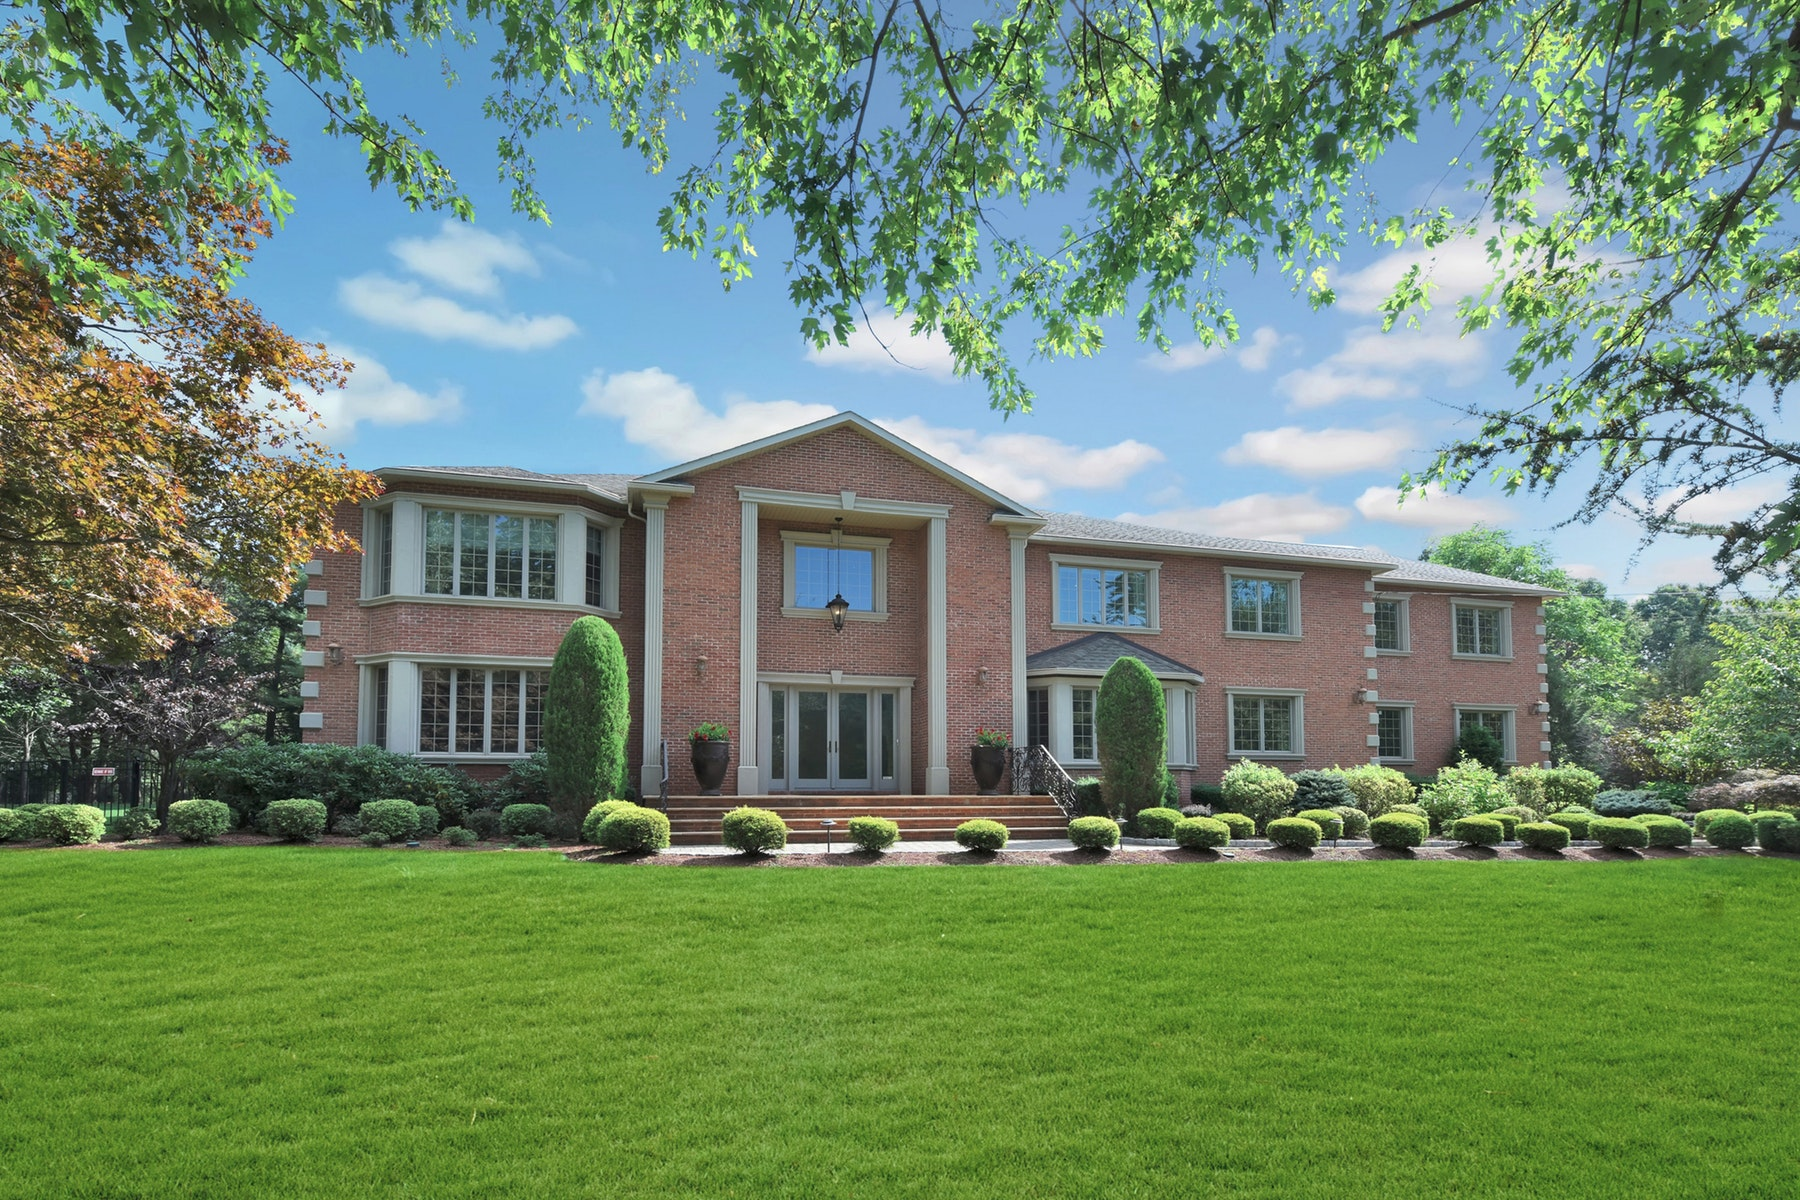 Single Family Homes för Försäljning vid 916 Maria Court Redefines Magnificence 916 Marie Court, Franklin Lakes, New Jersey 07417 Förenta staterna